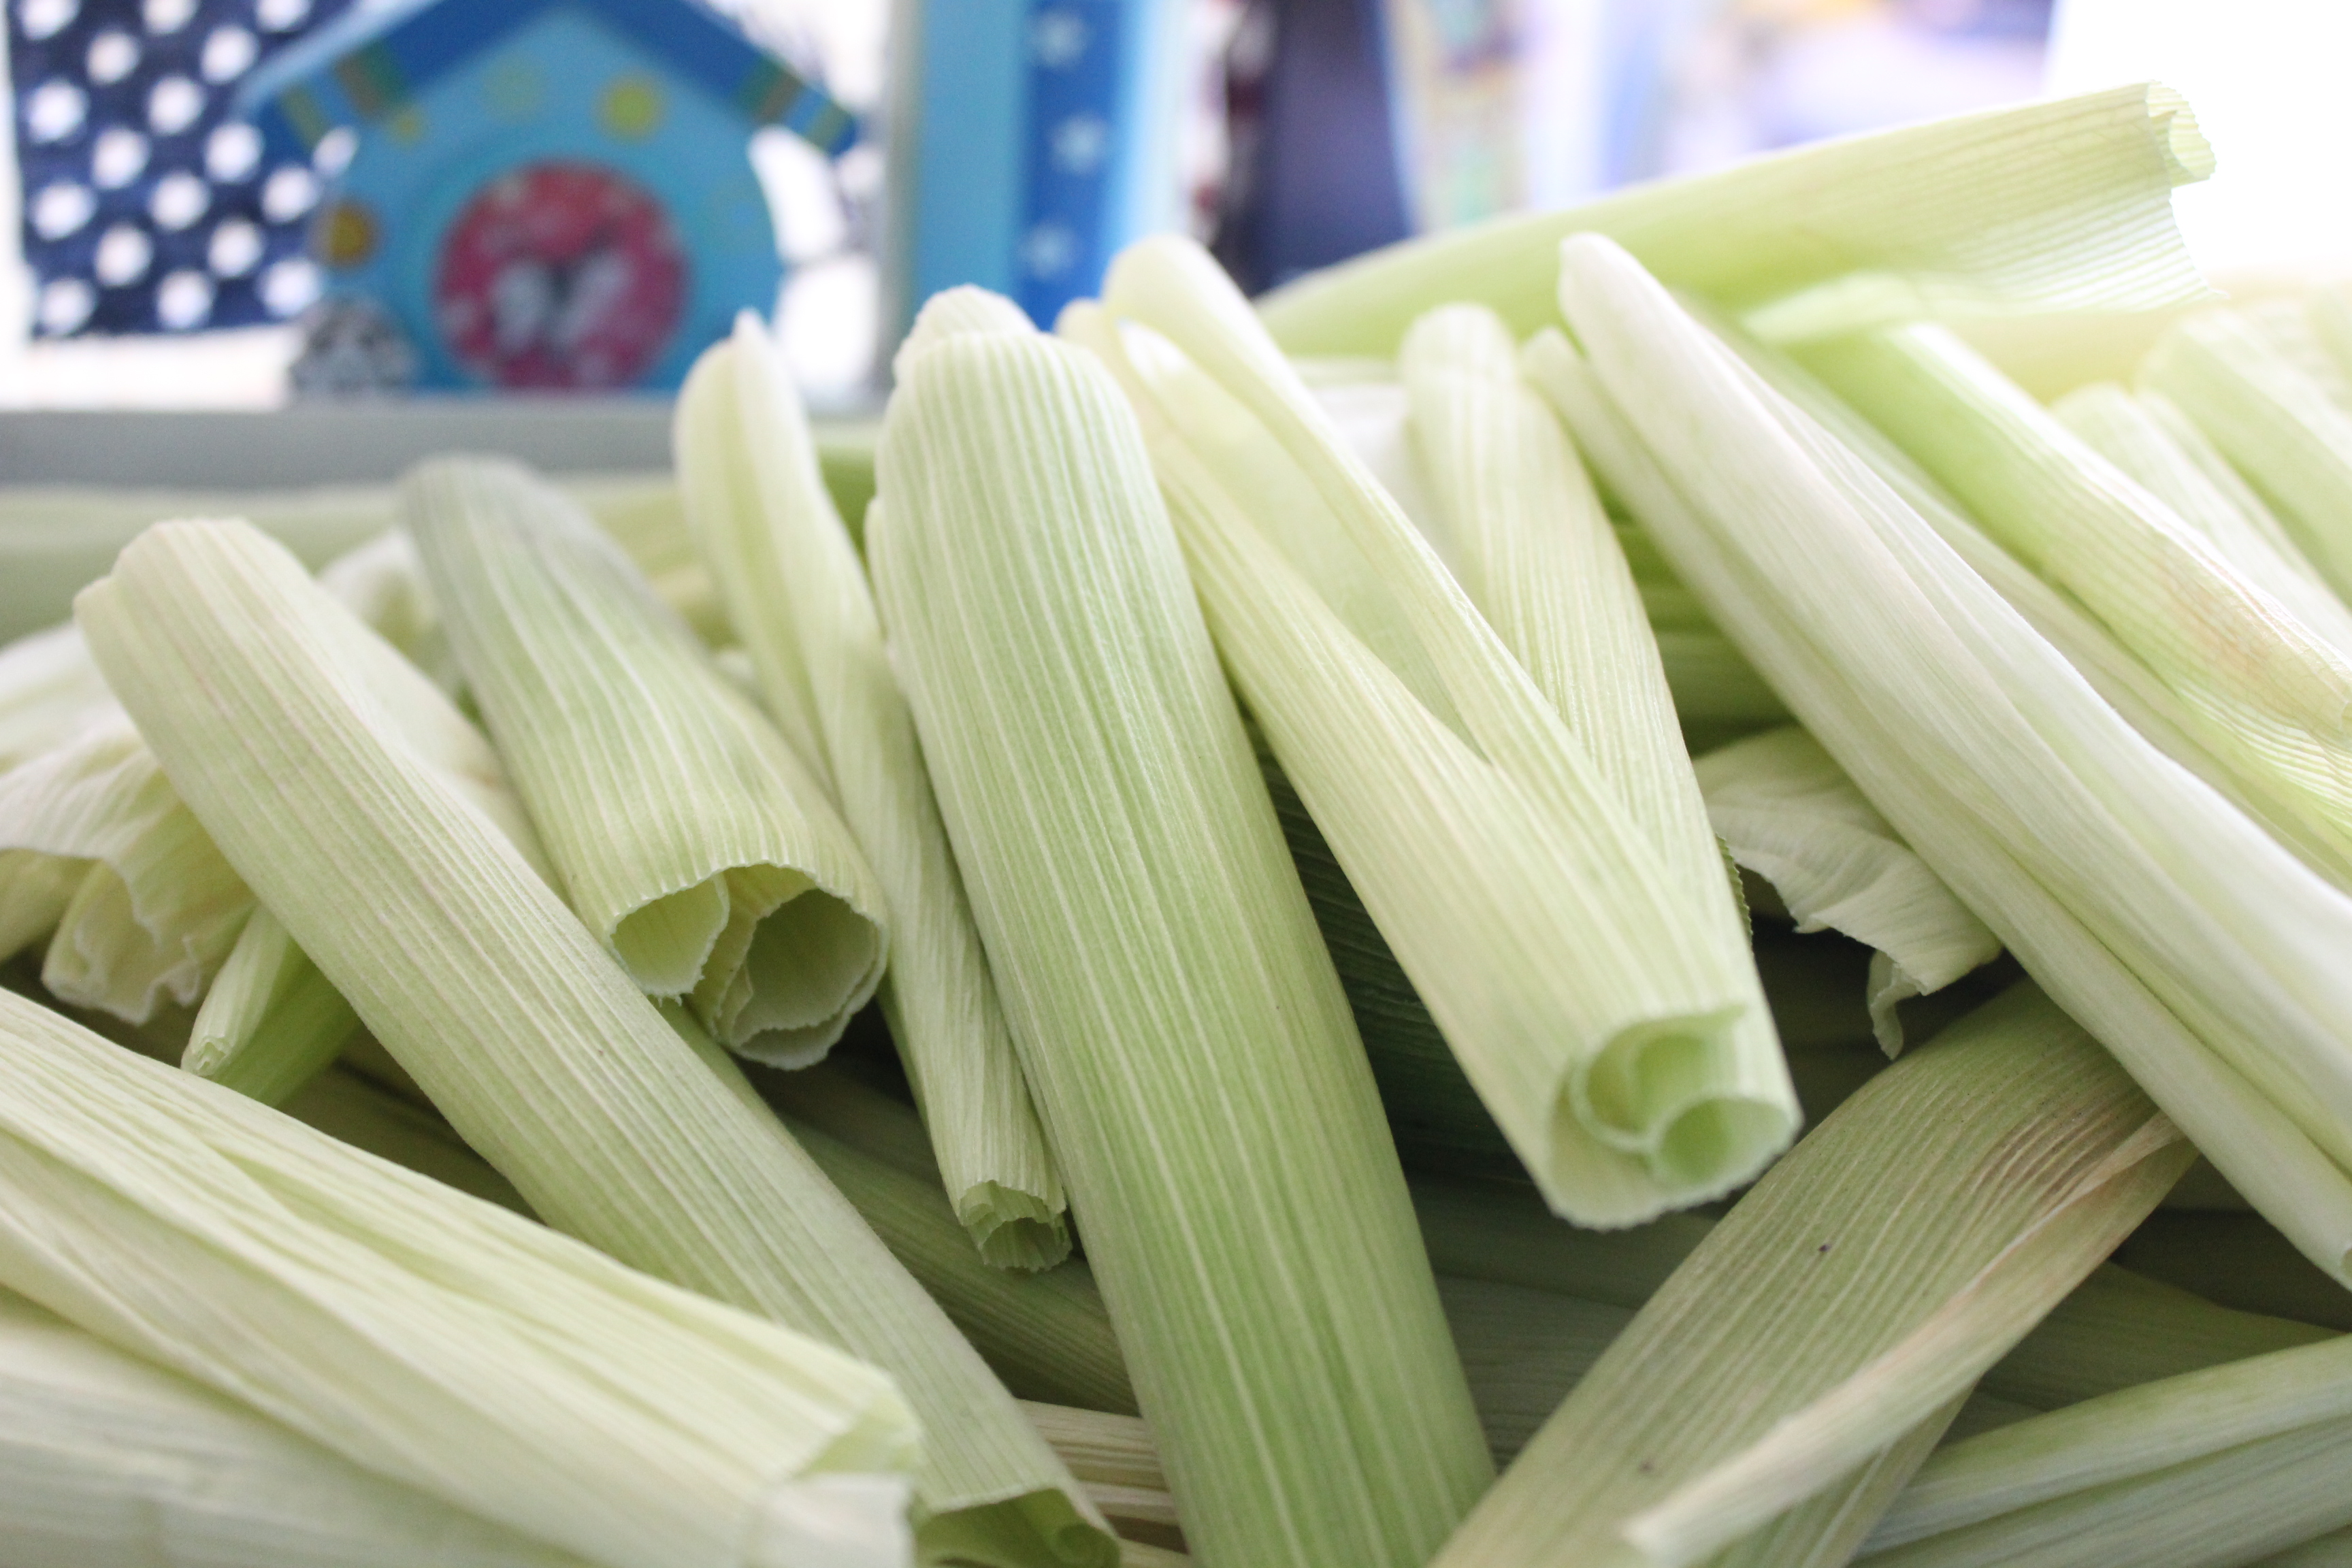 How to dry corn husks for tamales -